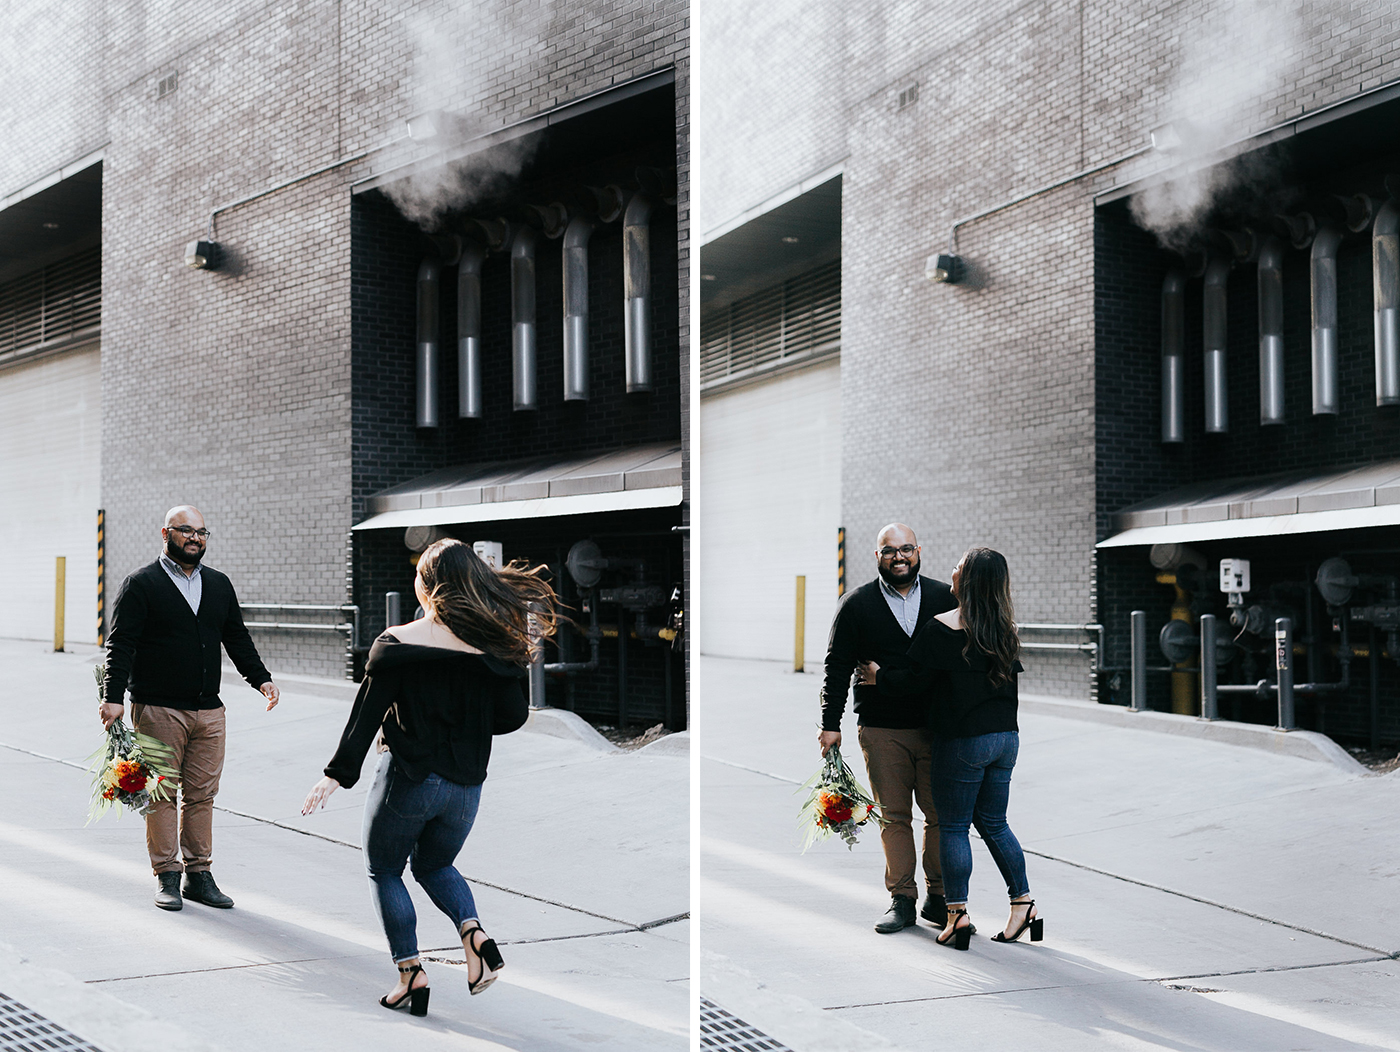 karen&arthur-engagement-at-st-lawrence-market-for-web-27